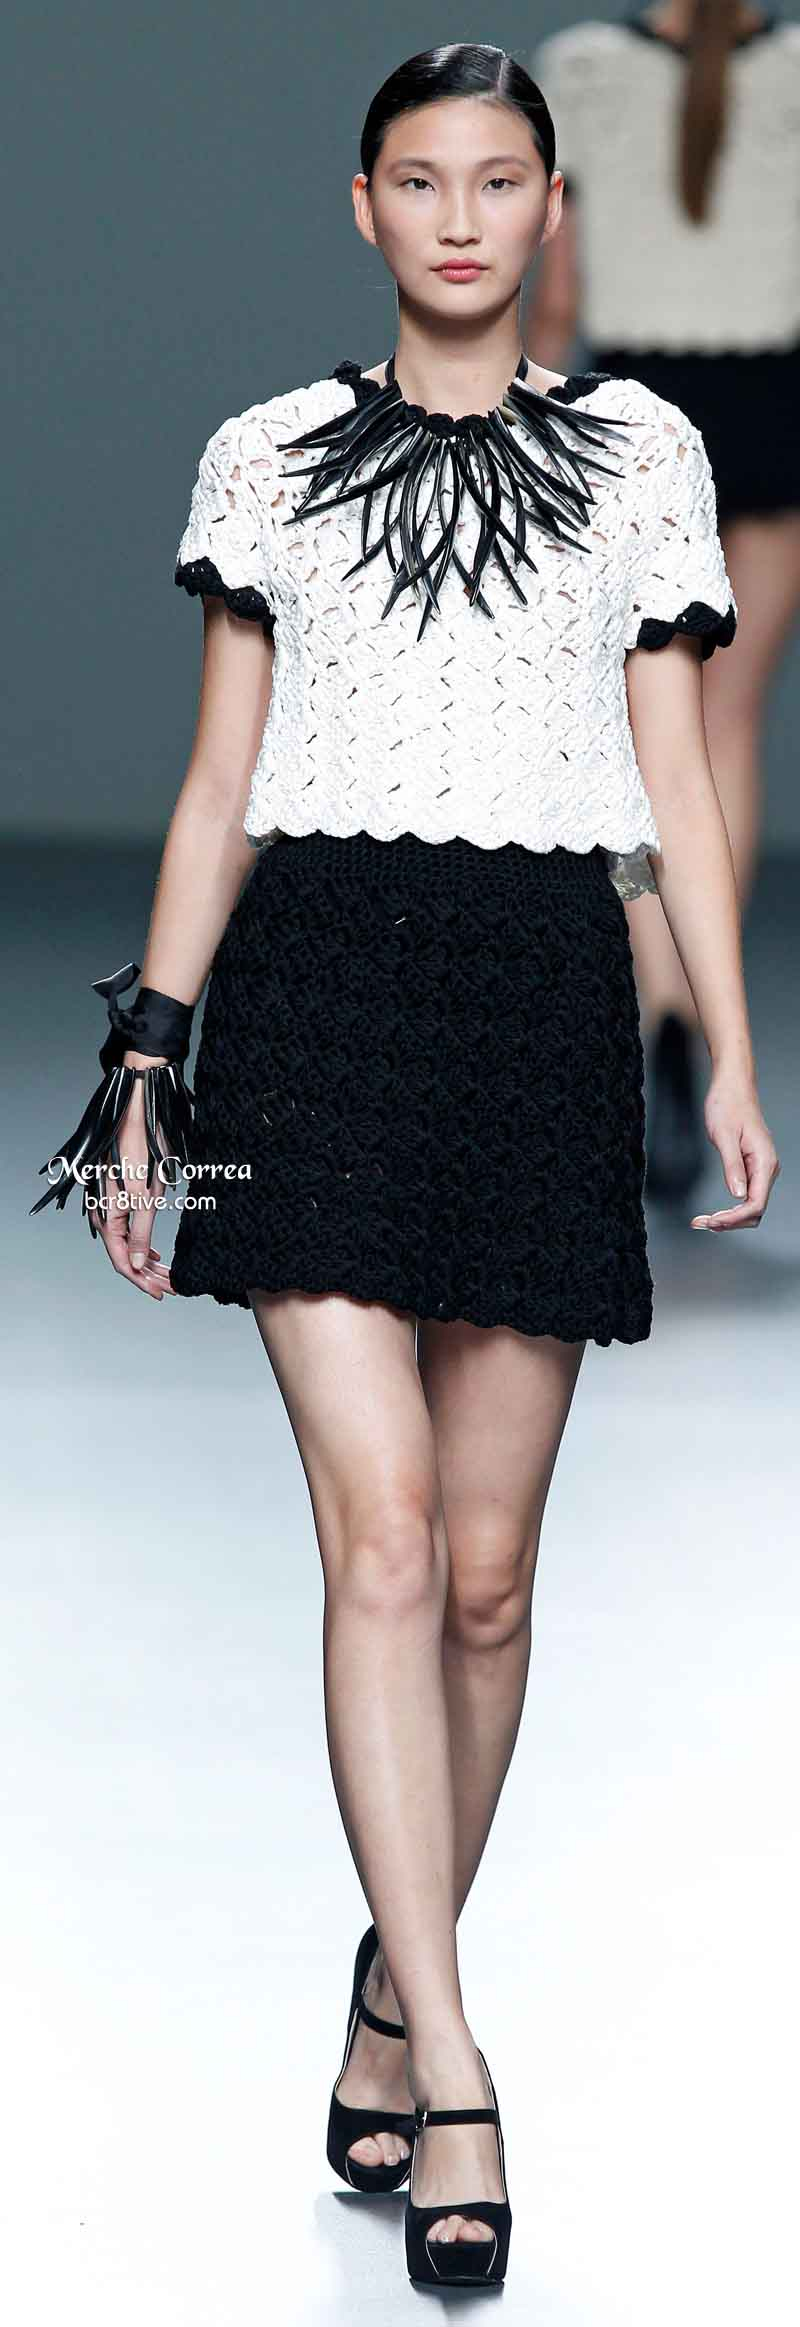 Merche Correa Spring 2014 - Crocheted Top